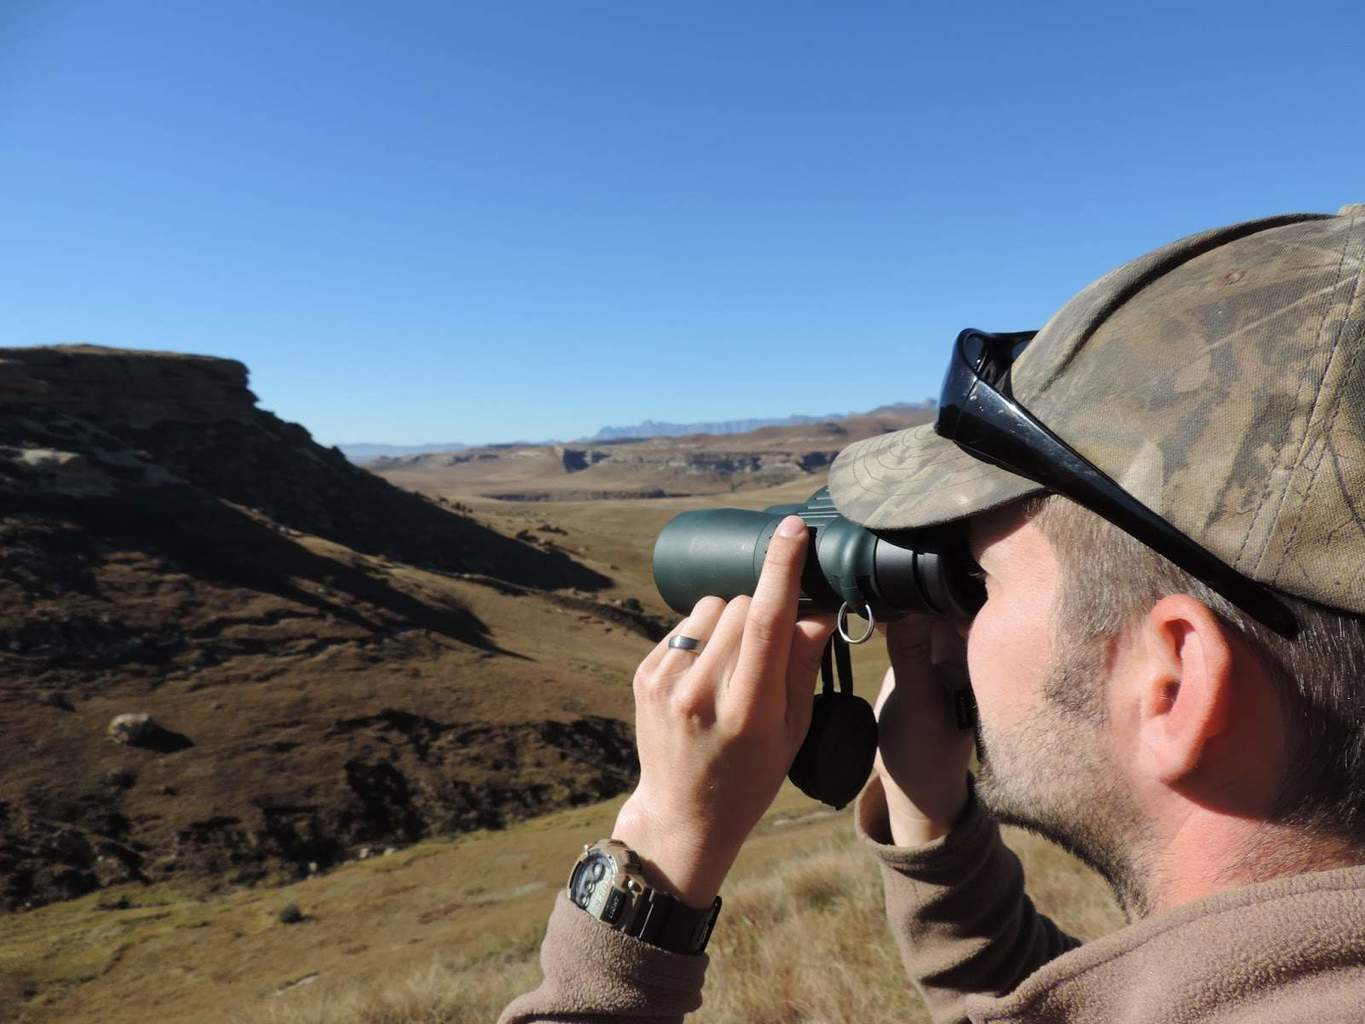 The Best Compact Binoculars